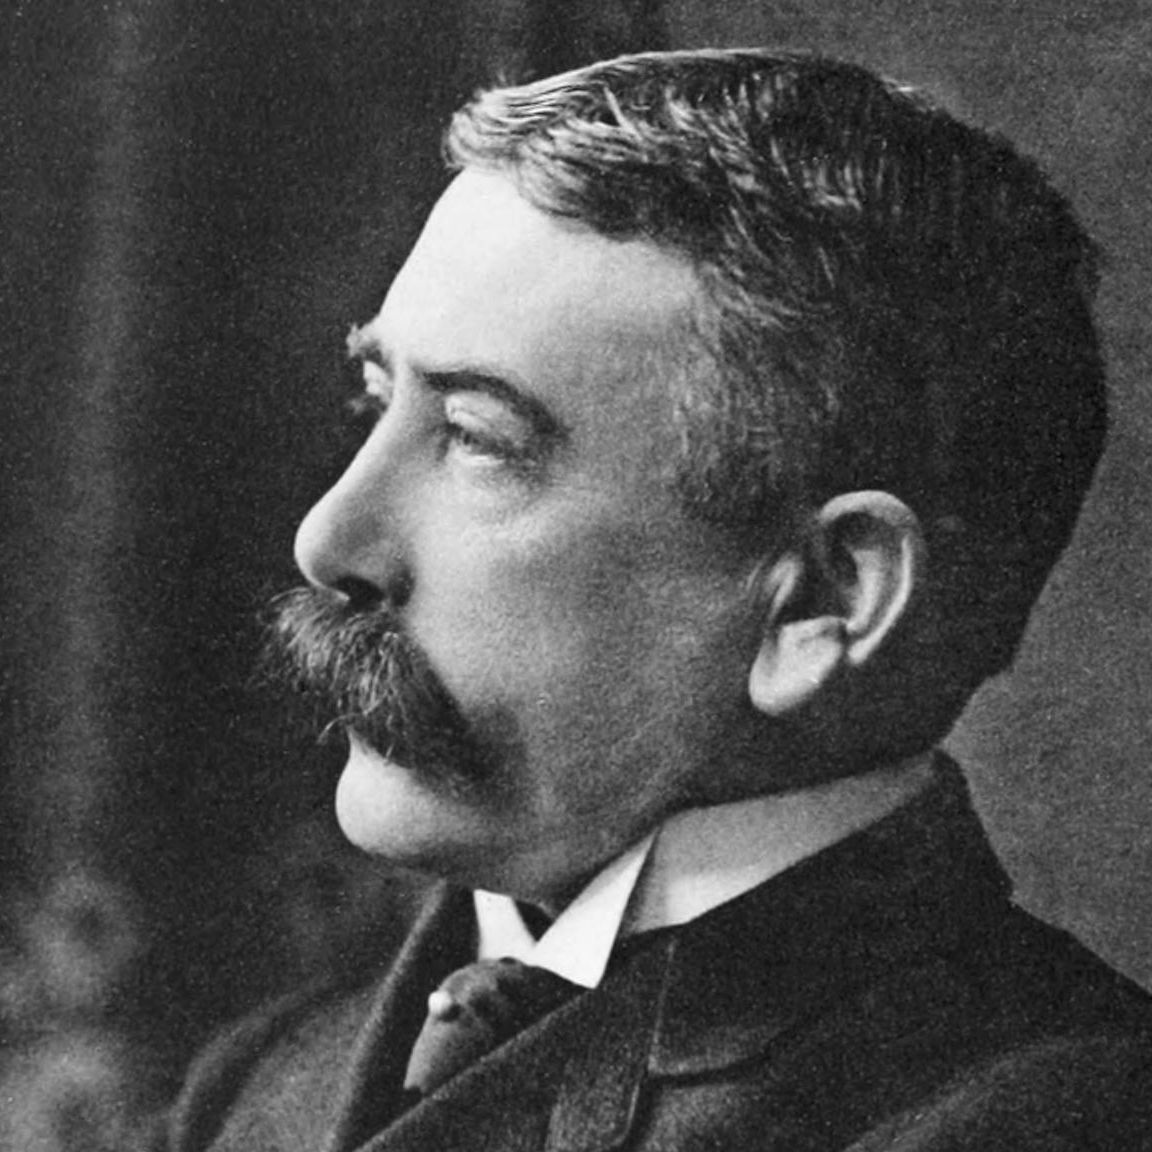 ferdinand de saussure essay Structuralism saussure's work, and its basis in his concepts of langue and parole the french words, langue, language or tongue and parole, speech are concepts by ferdinand de saussure and deal with general linguistics or grammar.